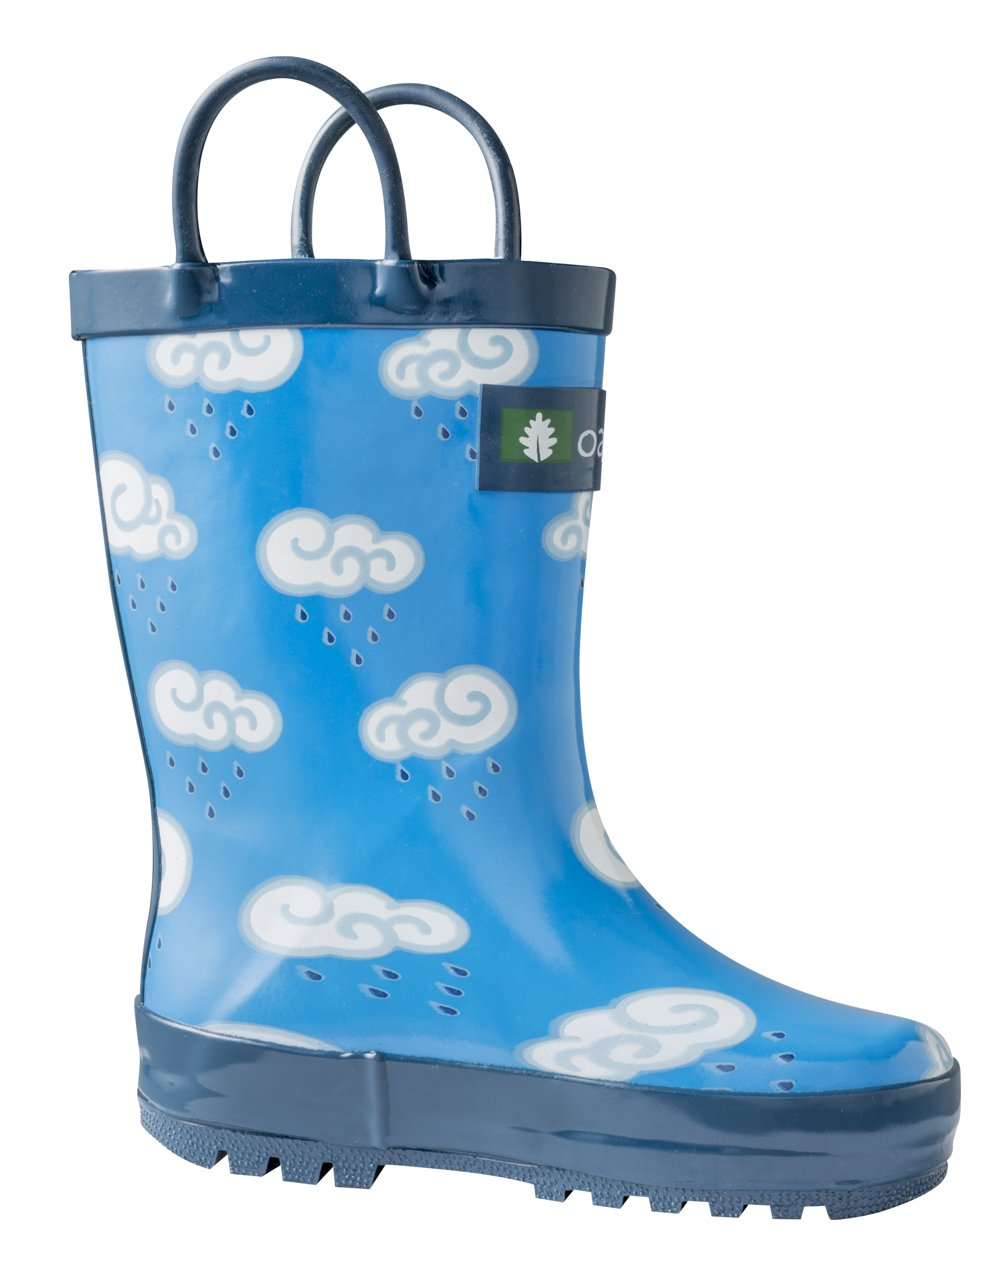 Oakiwear Kids Rubber Rain Boots with Easy-On Handles, Clouds, 7T US Toddler by Oakiwear